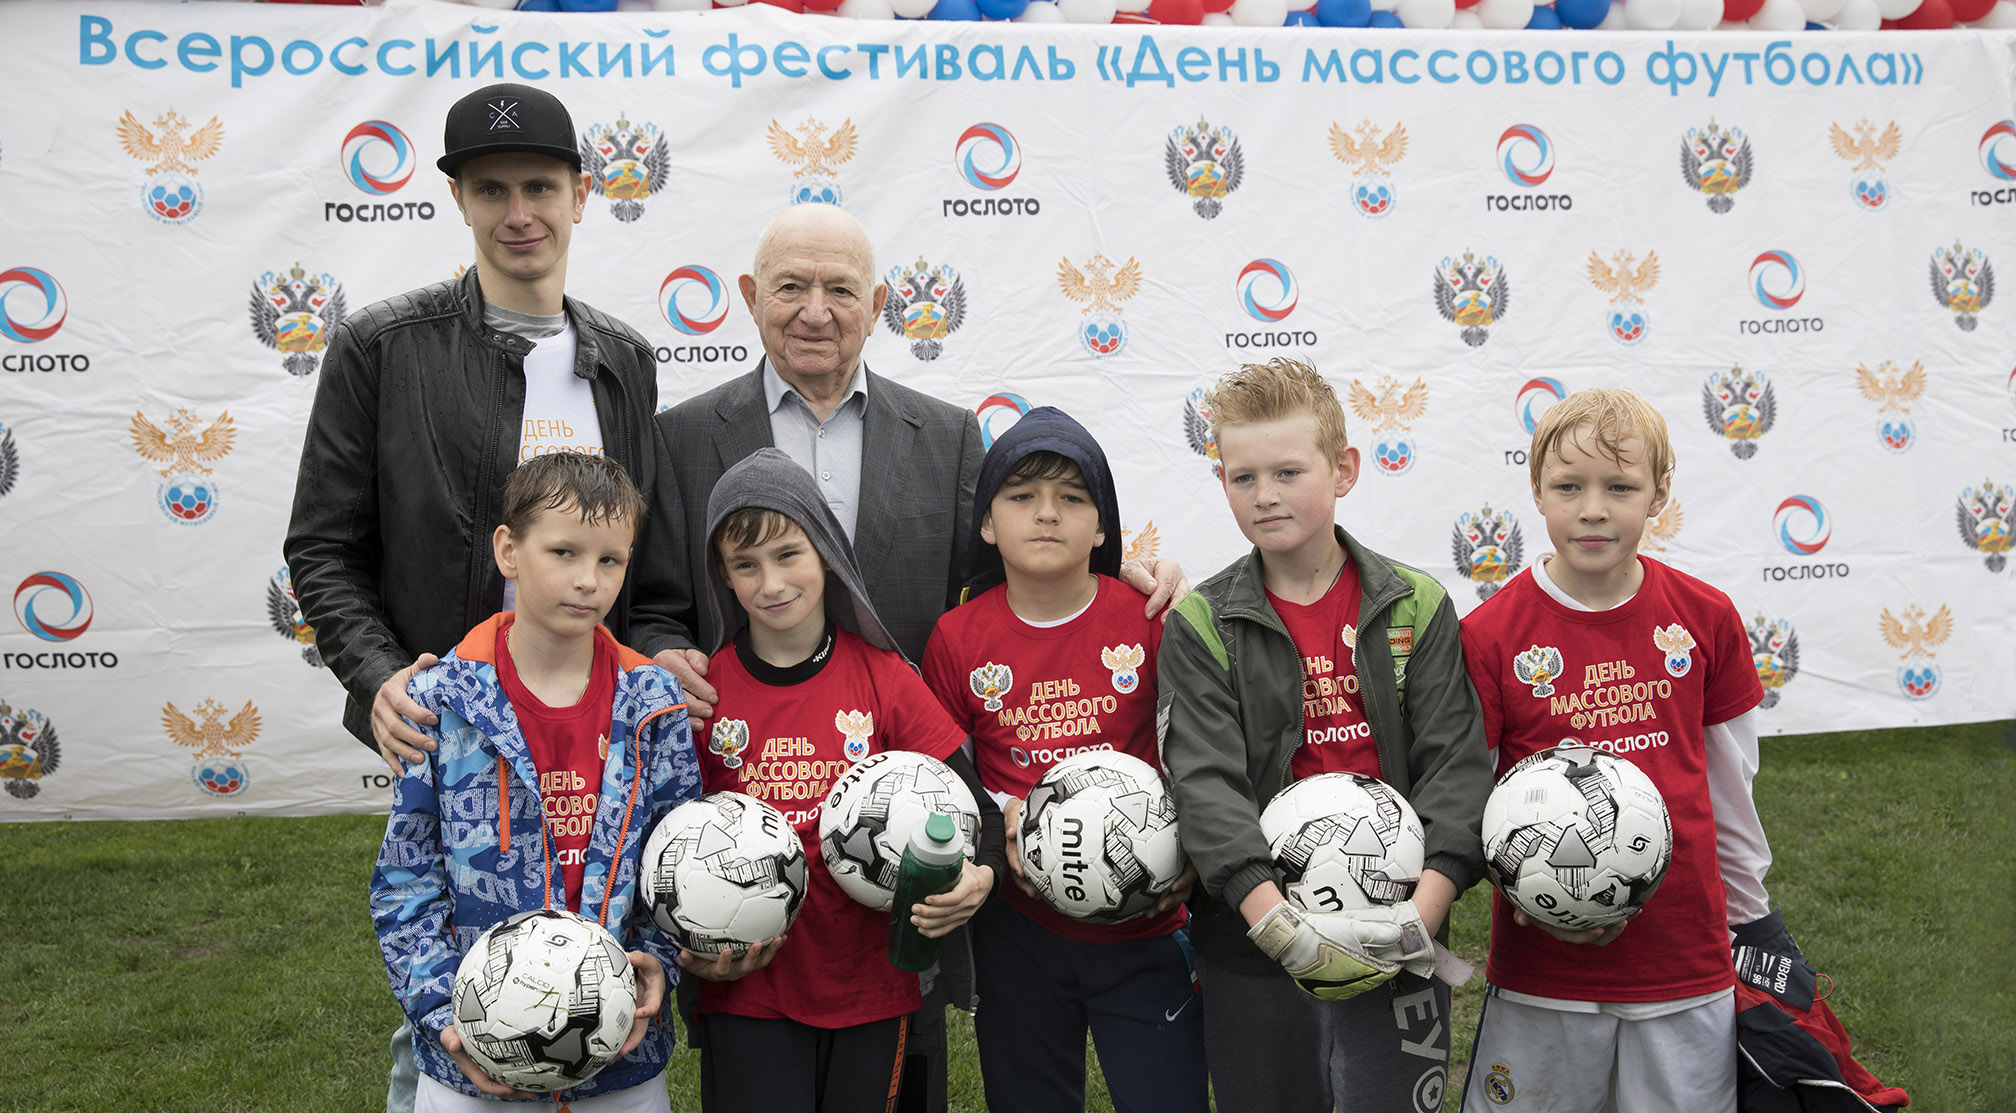 Gosloto supported the All-Russian Mass Football Day